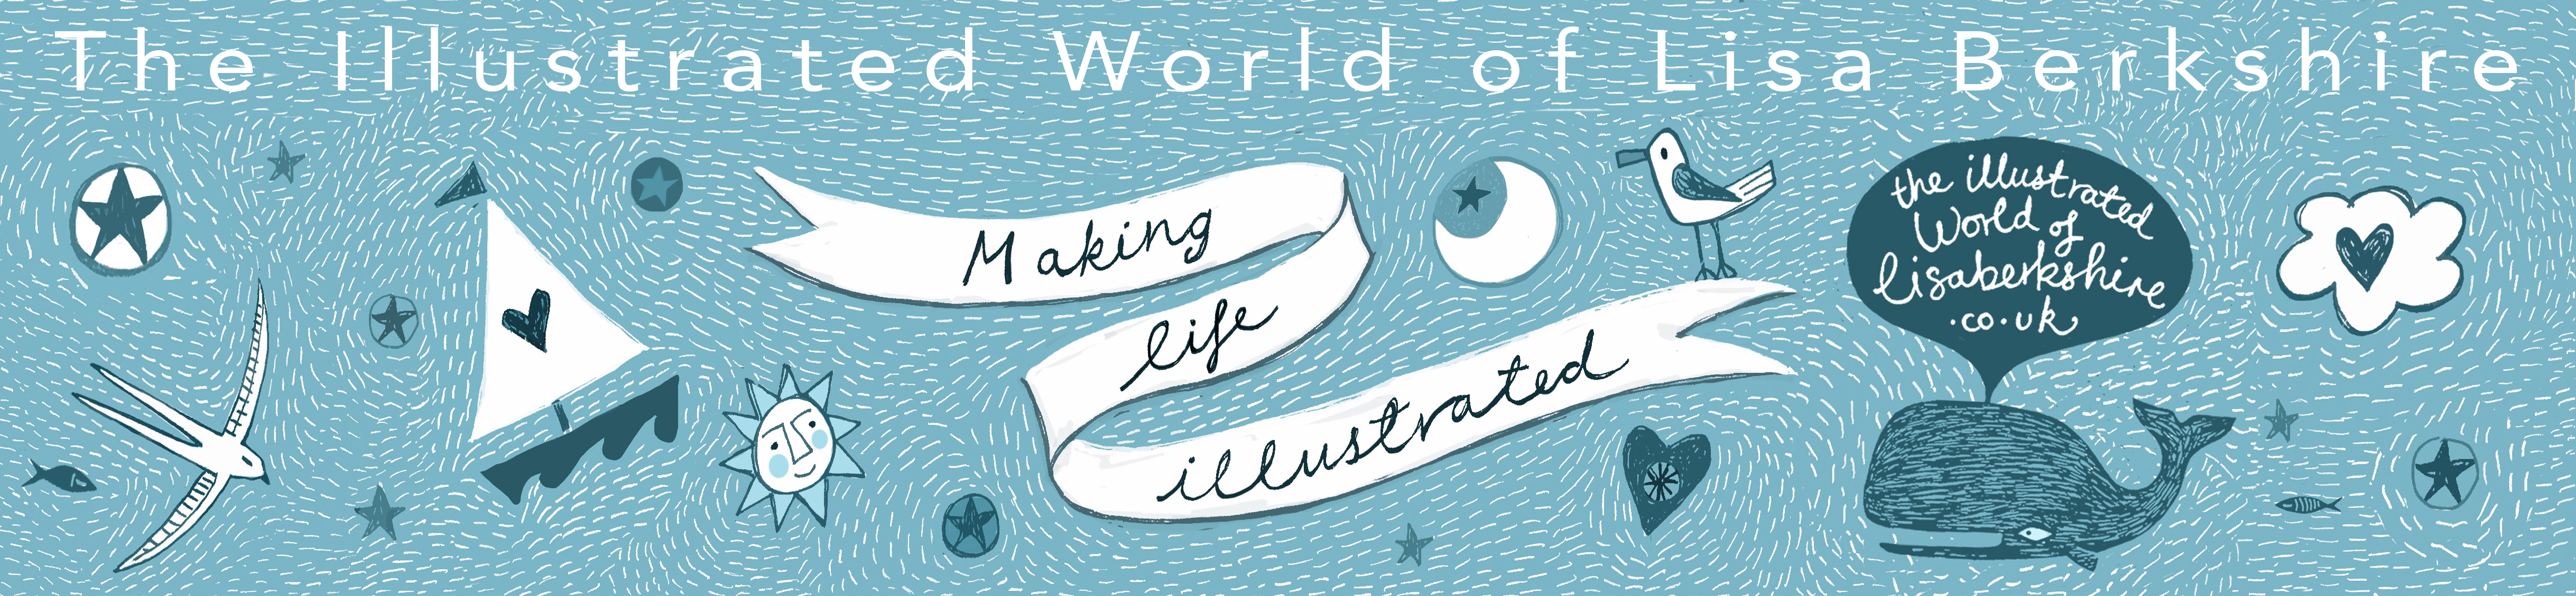 THE ILLUSTRATED WORLD OF LISA BERKSHIRE